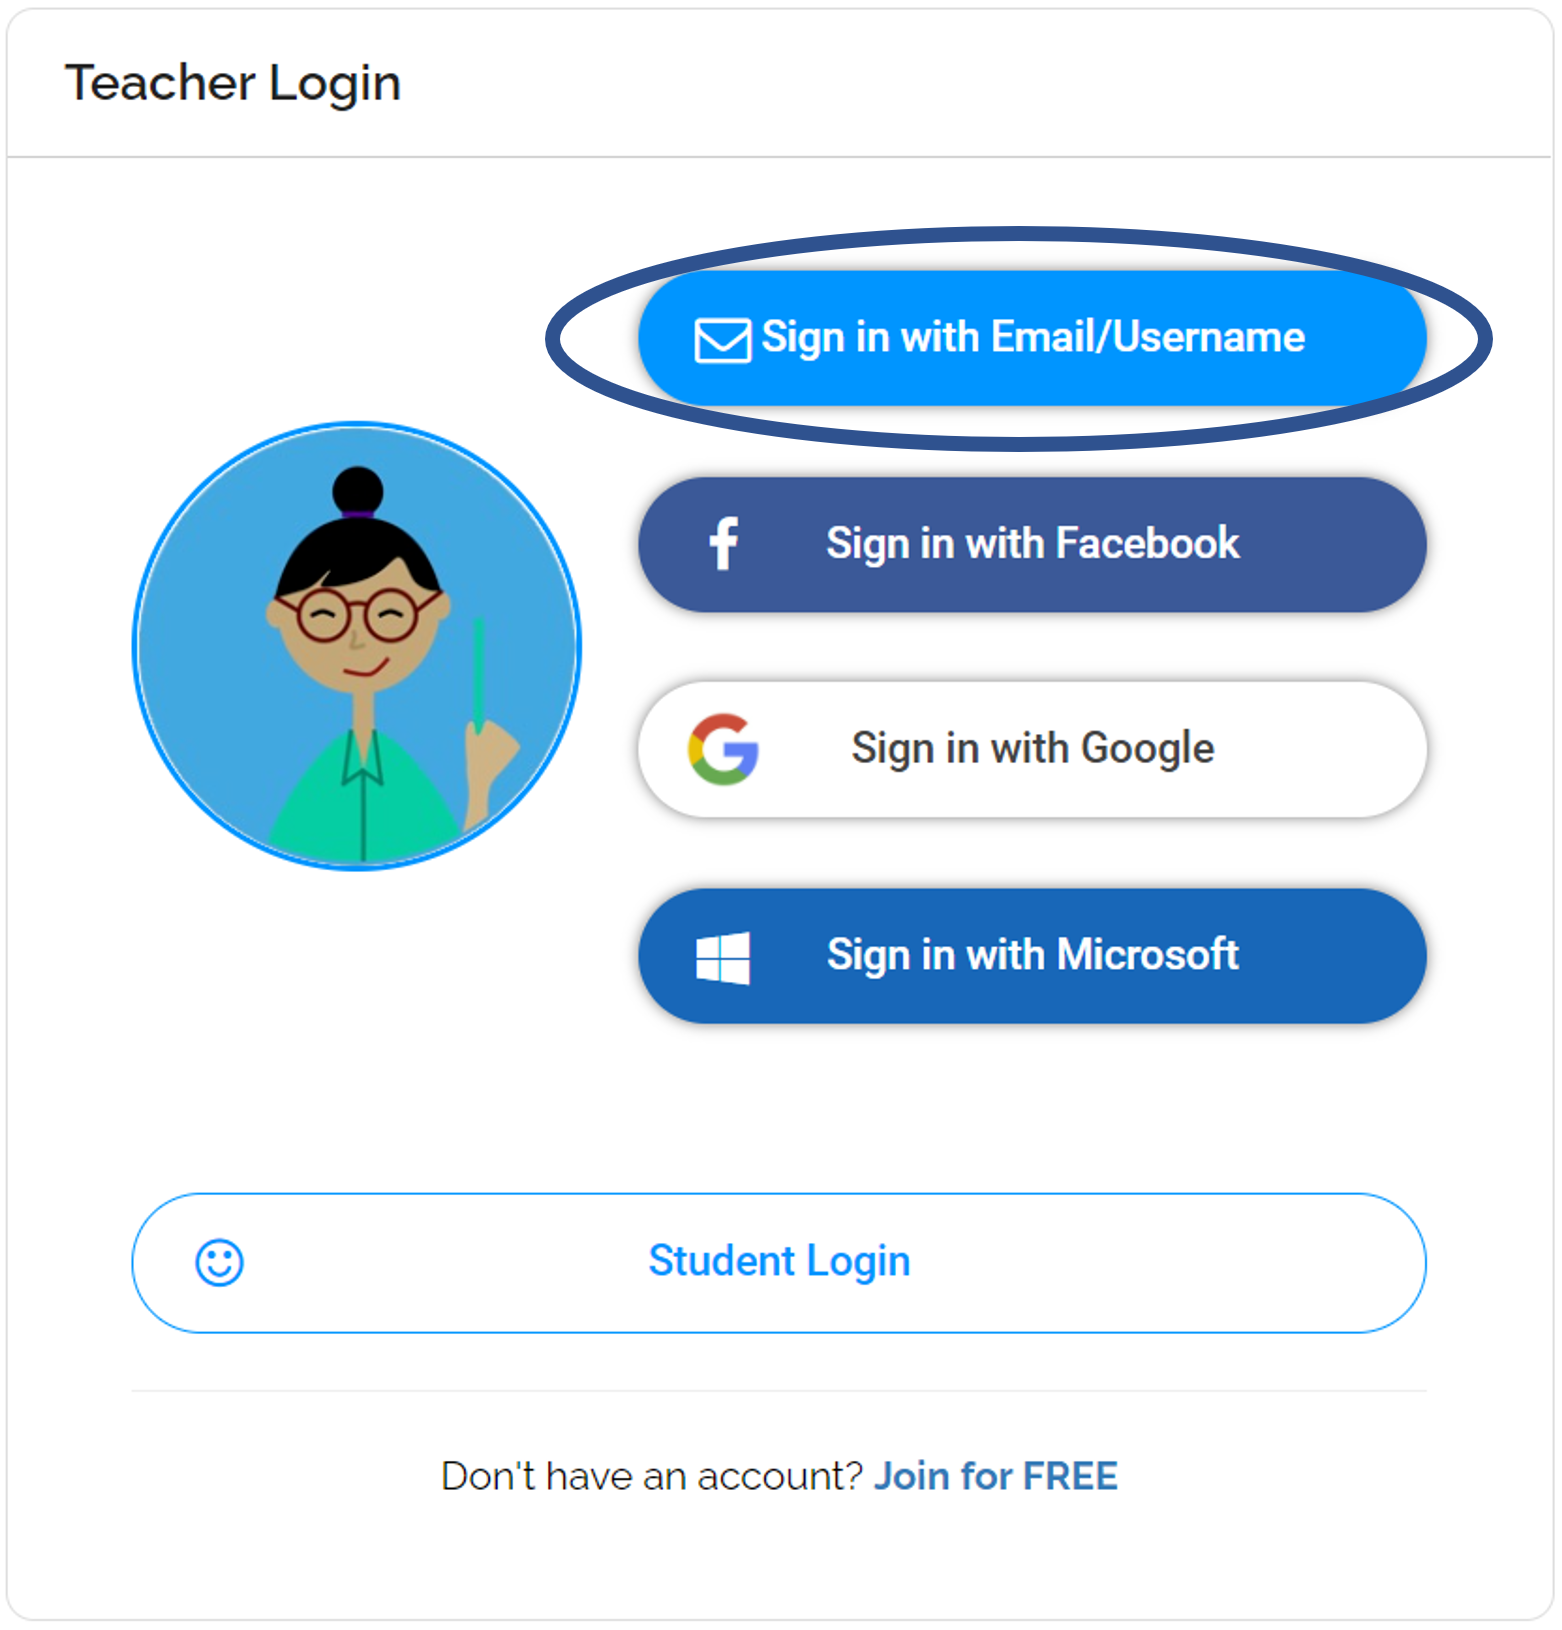 Teacher Log in Sign in with Email/Username